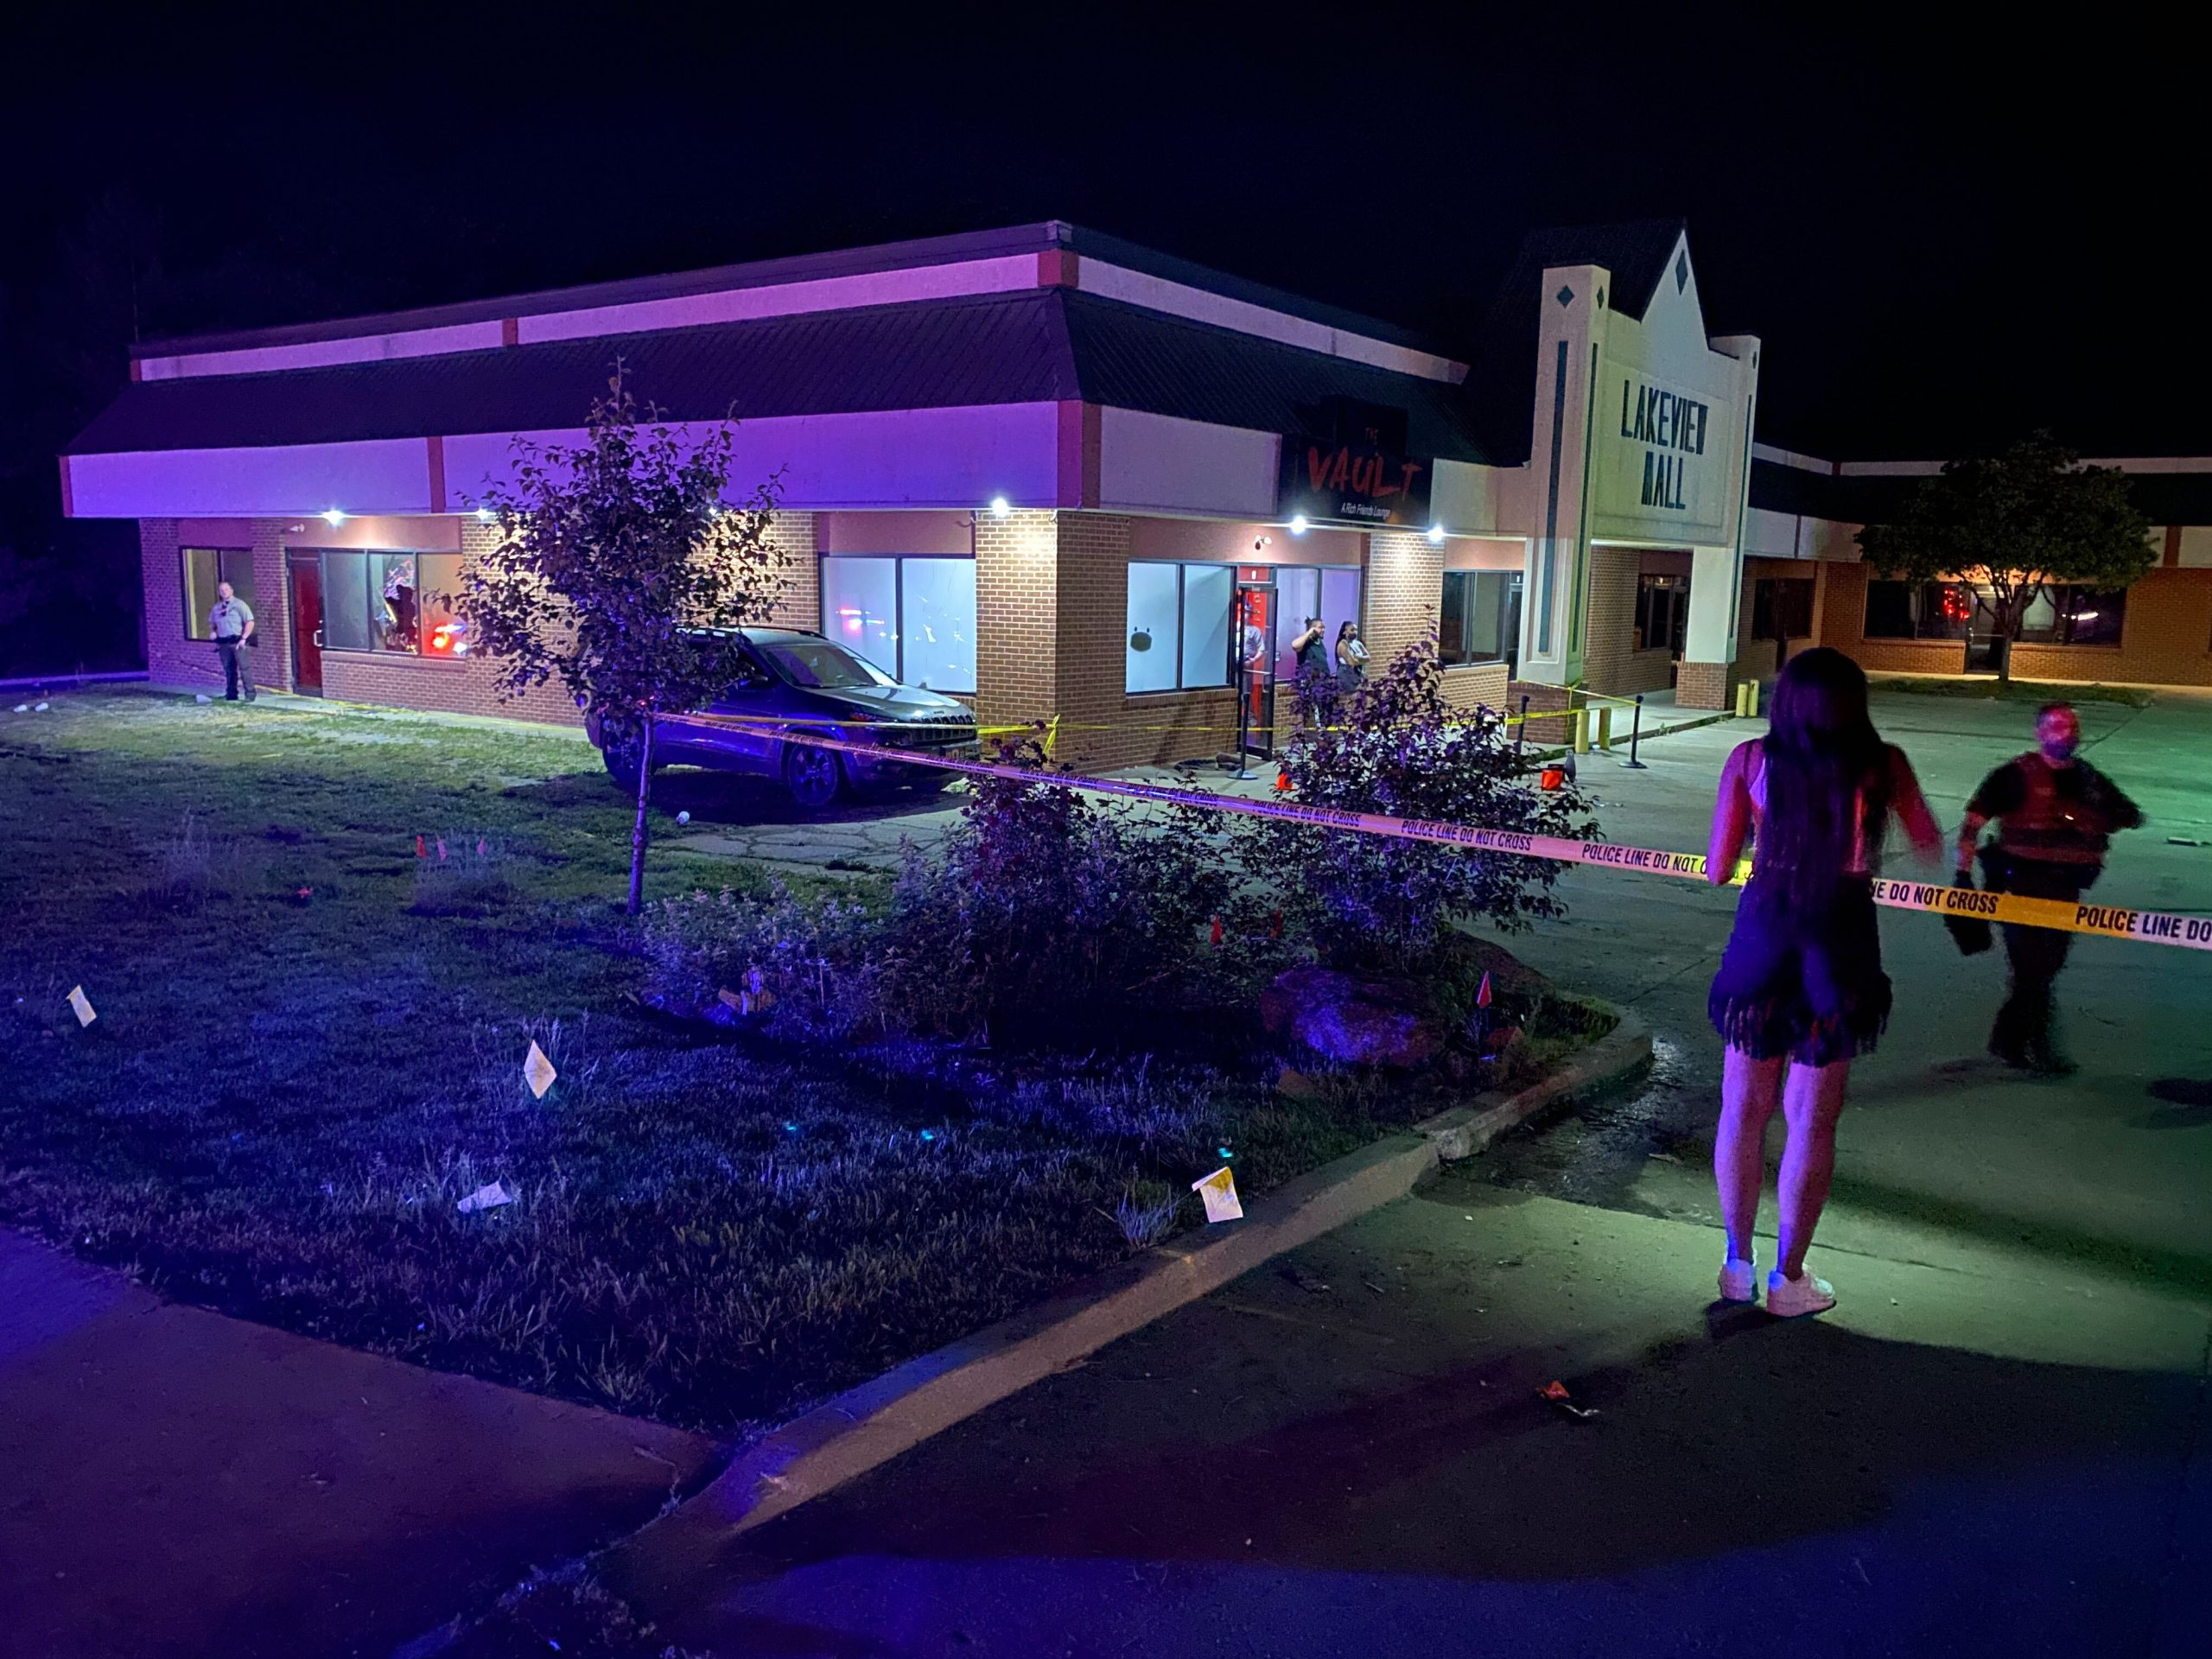 Authorities investigate after a shooting at The Vault nightclub just outside Columbia on May 23, 2021.